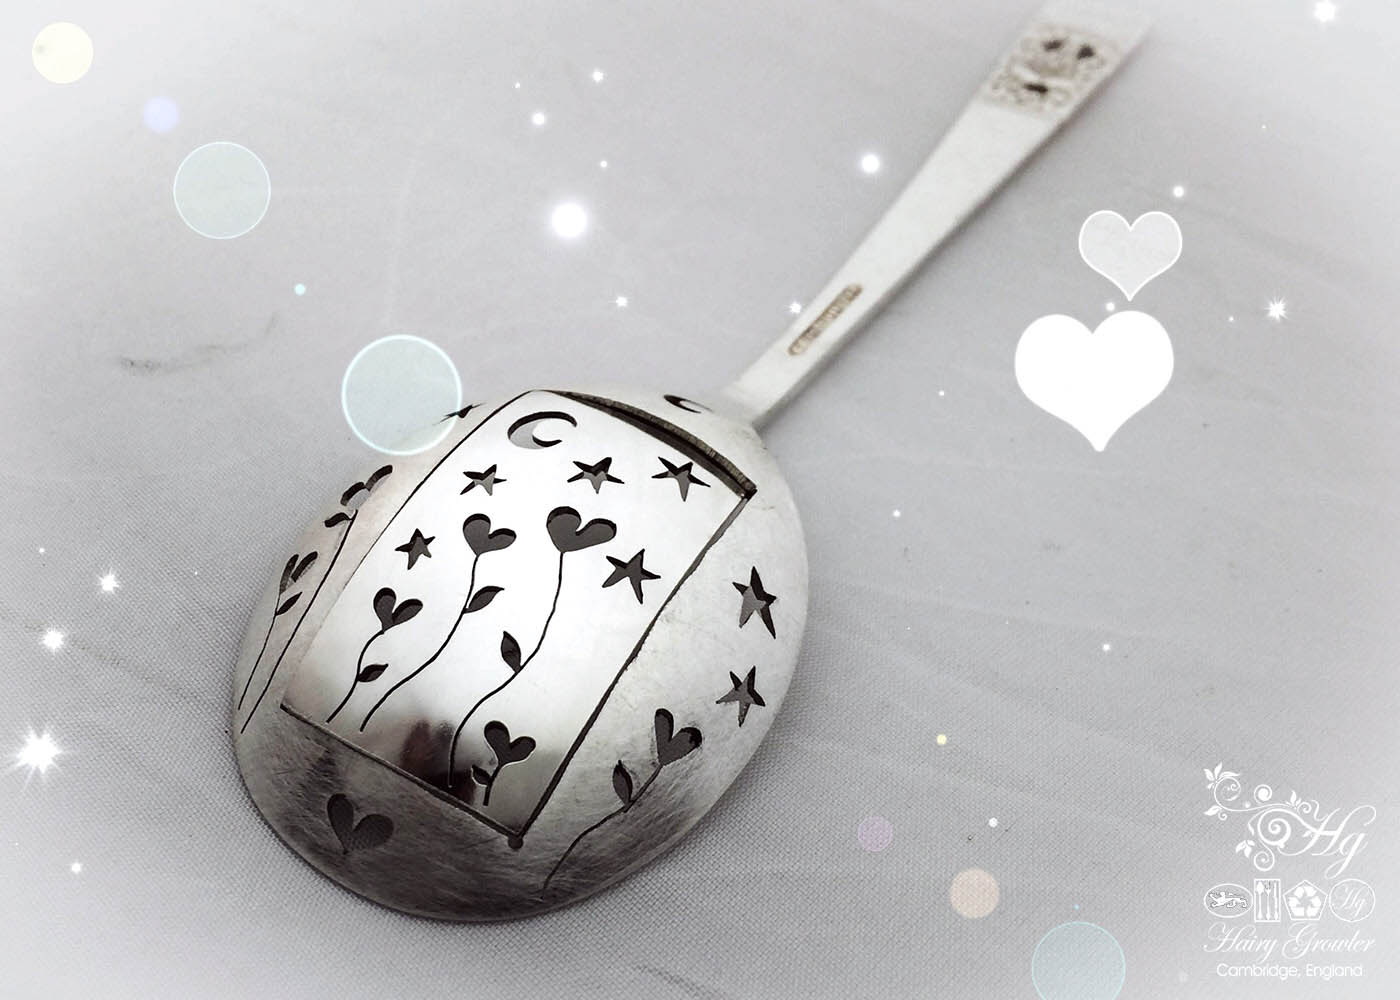 handcrafted and recycled spoon love heart grows brooch